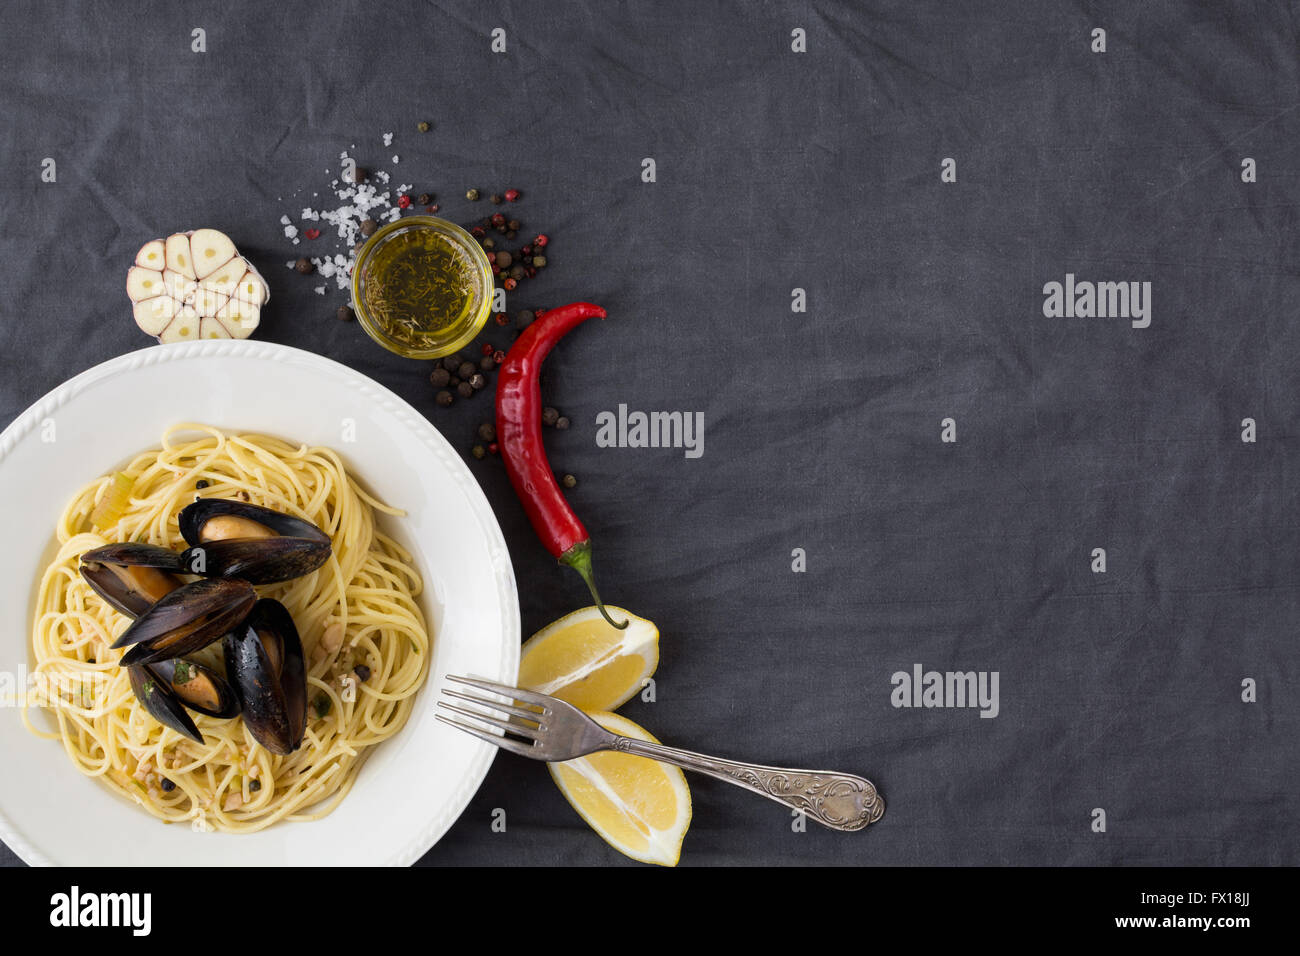 Pasta with mussels, lemons, chili pepper and spices - Stock Image